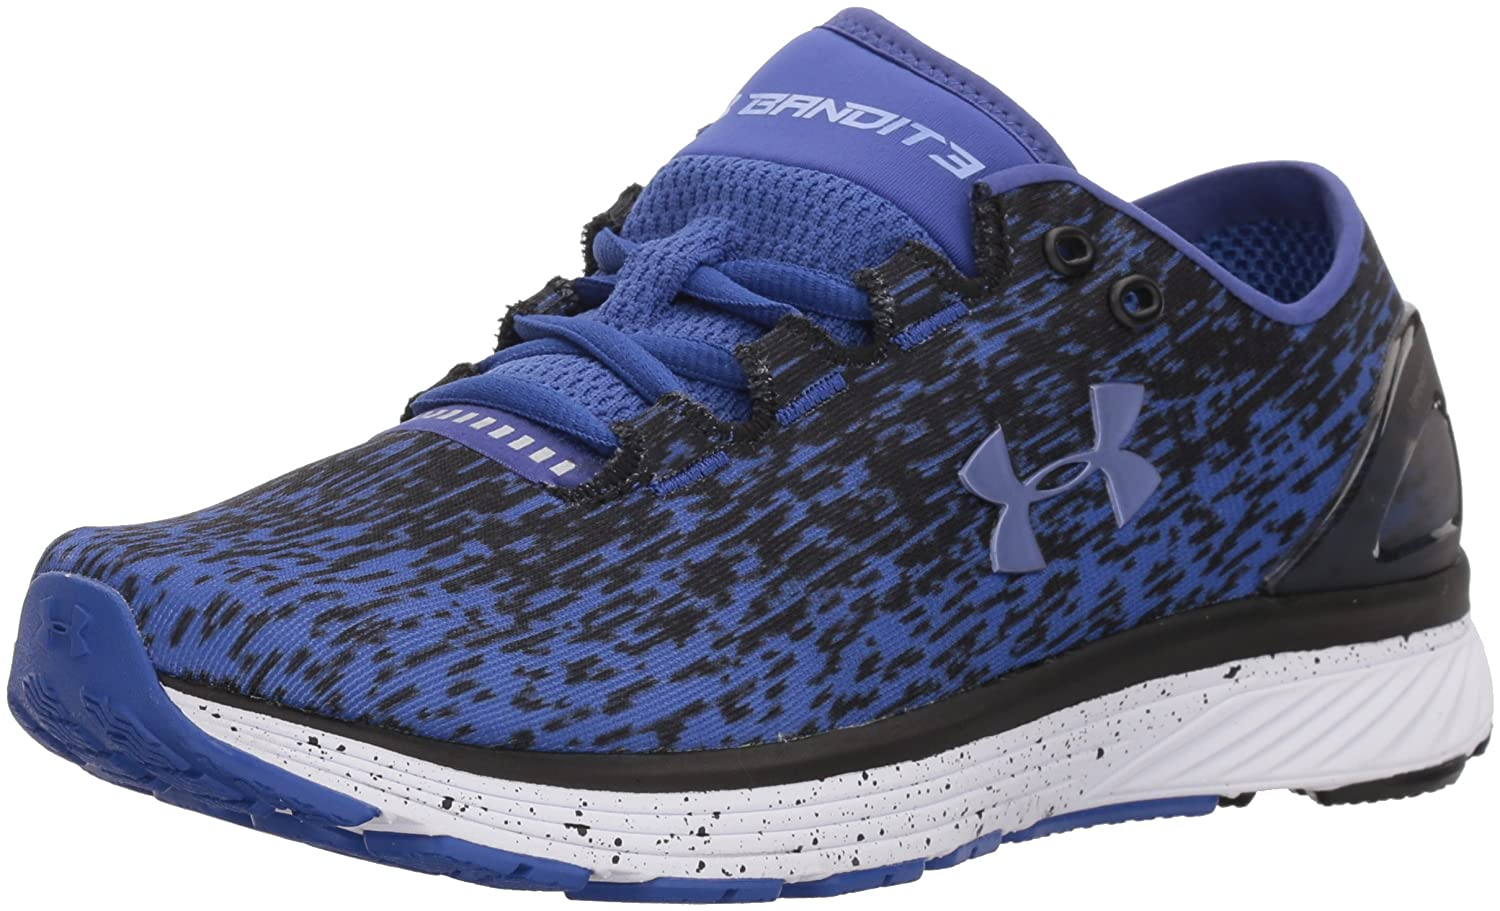 Under Armour Women's Charged Bandit 3 Ombre Sneaker B07144TLND 7.5 M US|Jupiter Blue (500)/Black